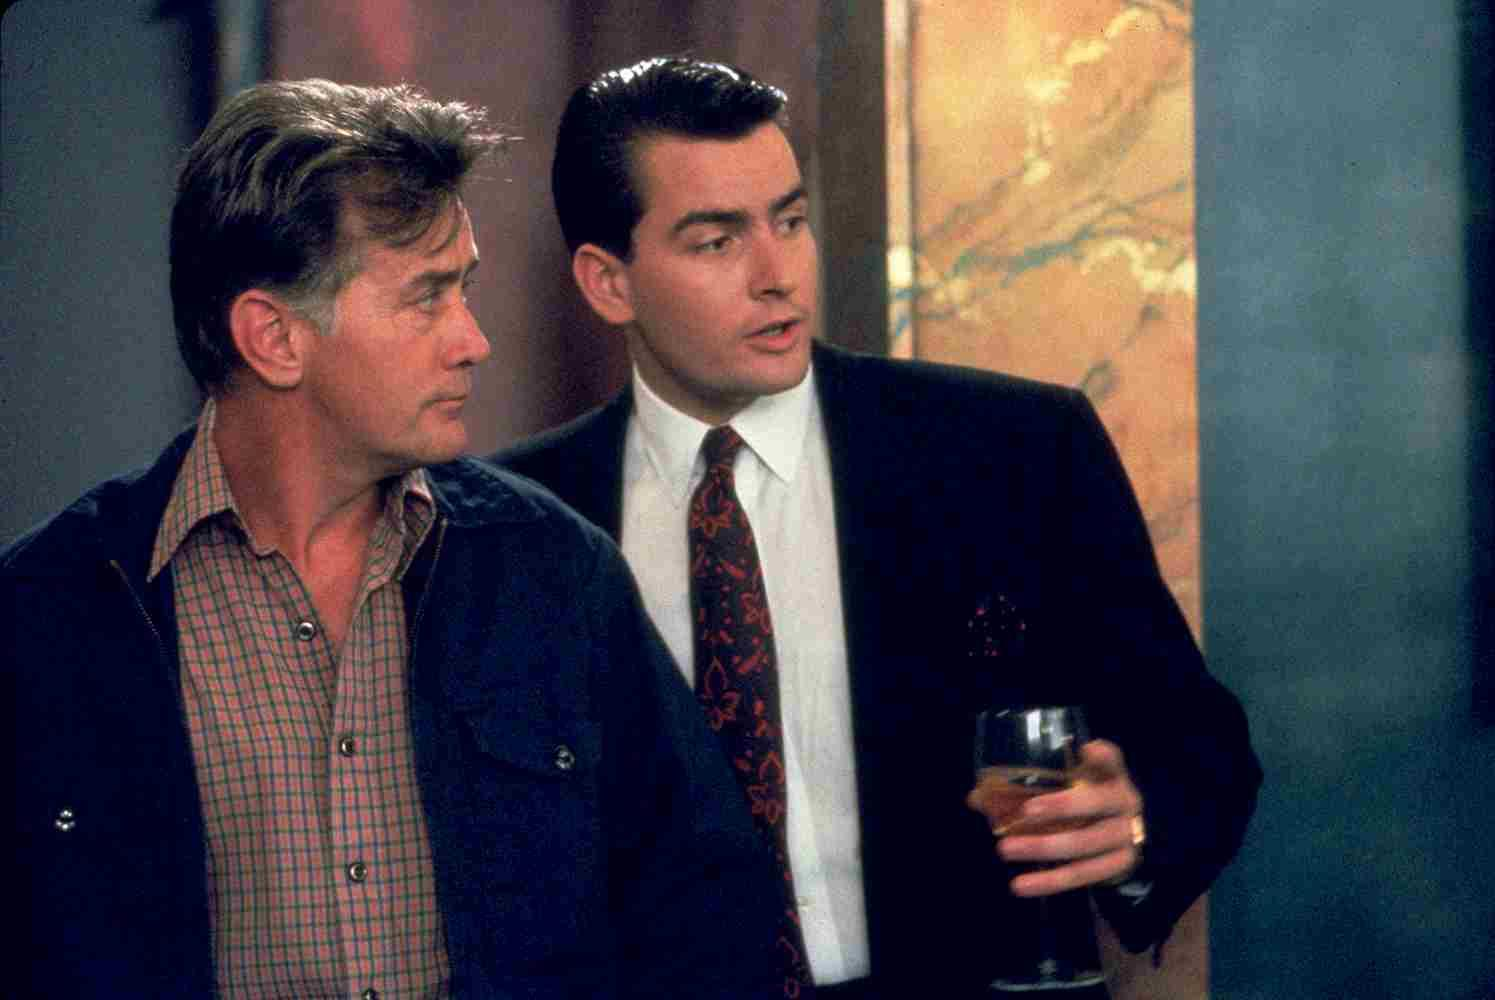 Martin and Charlie Sheen